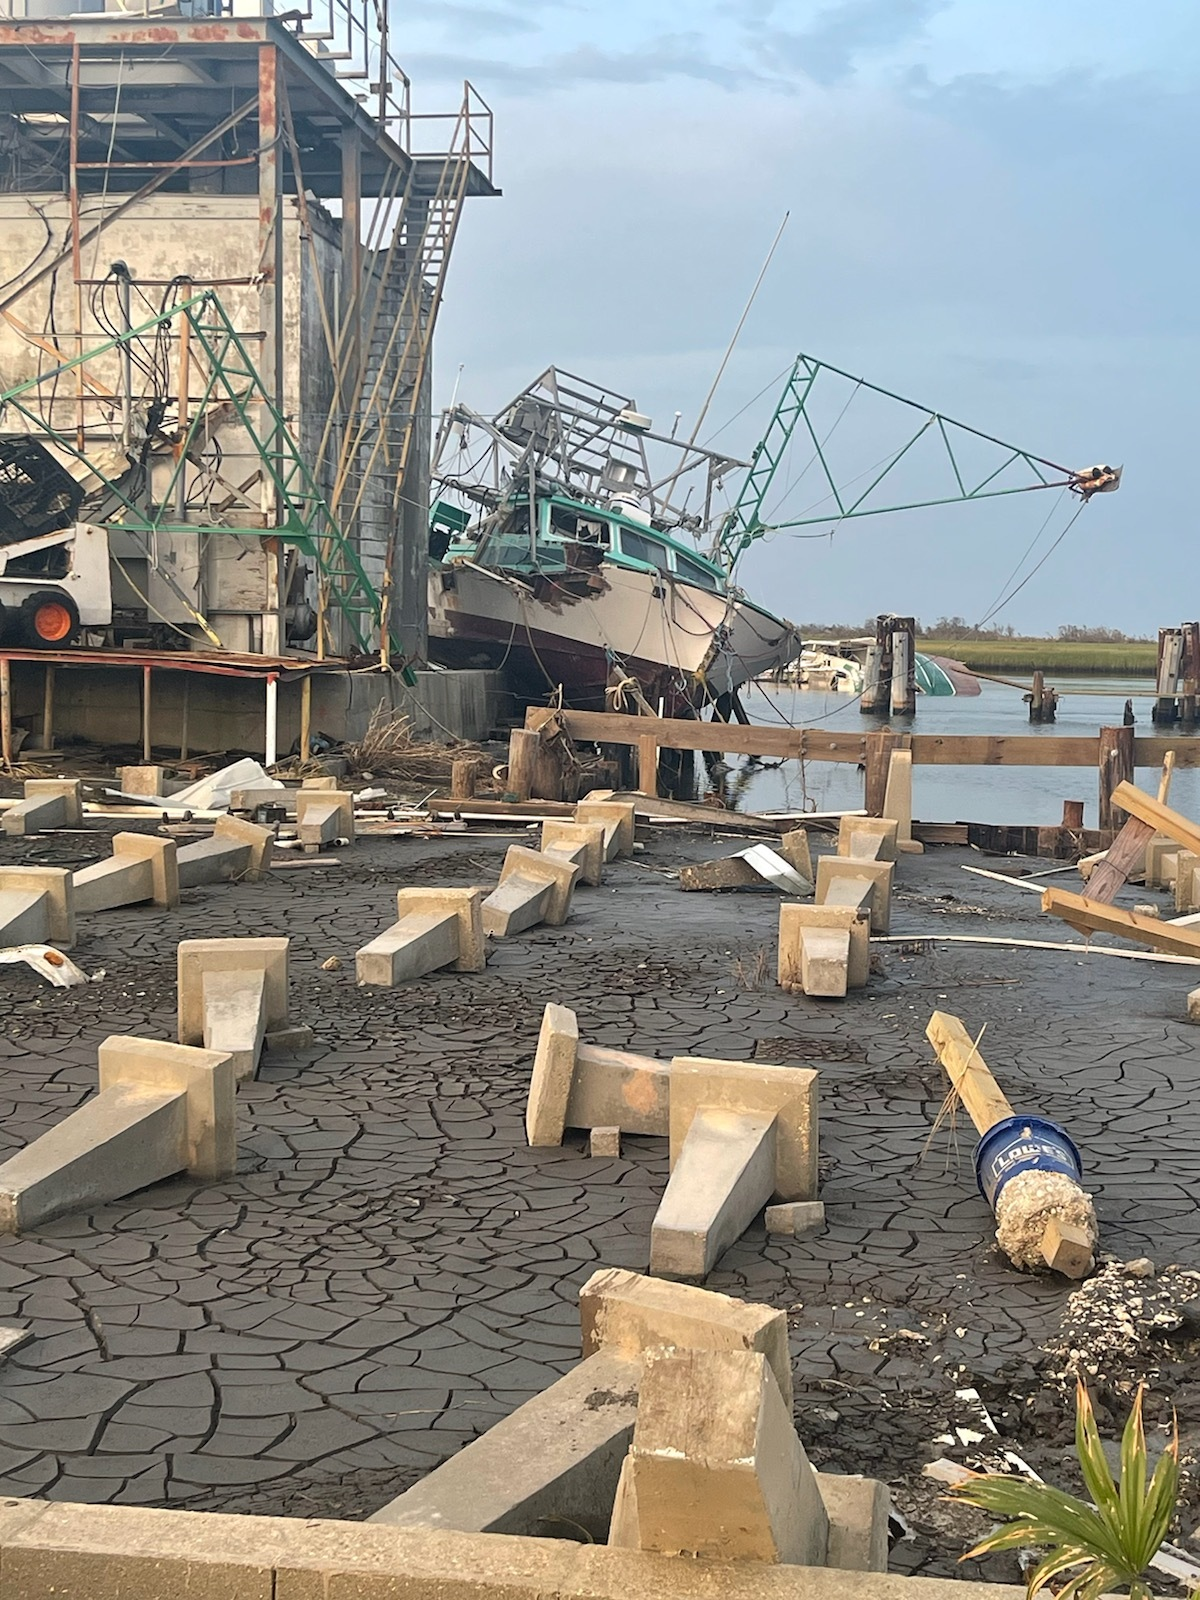 Destroyed Fishing Vessels